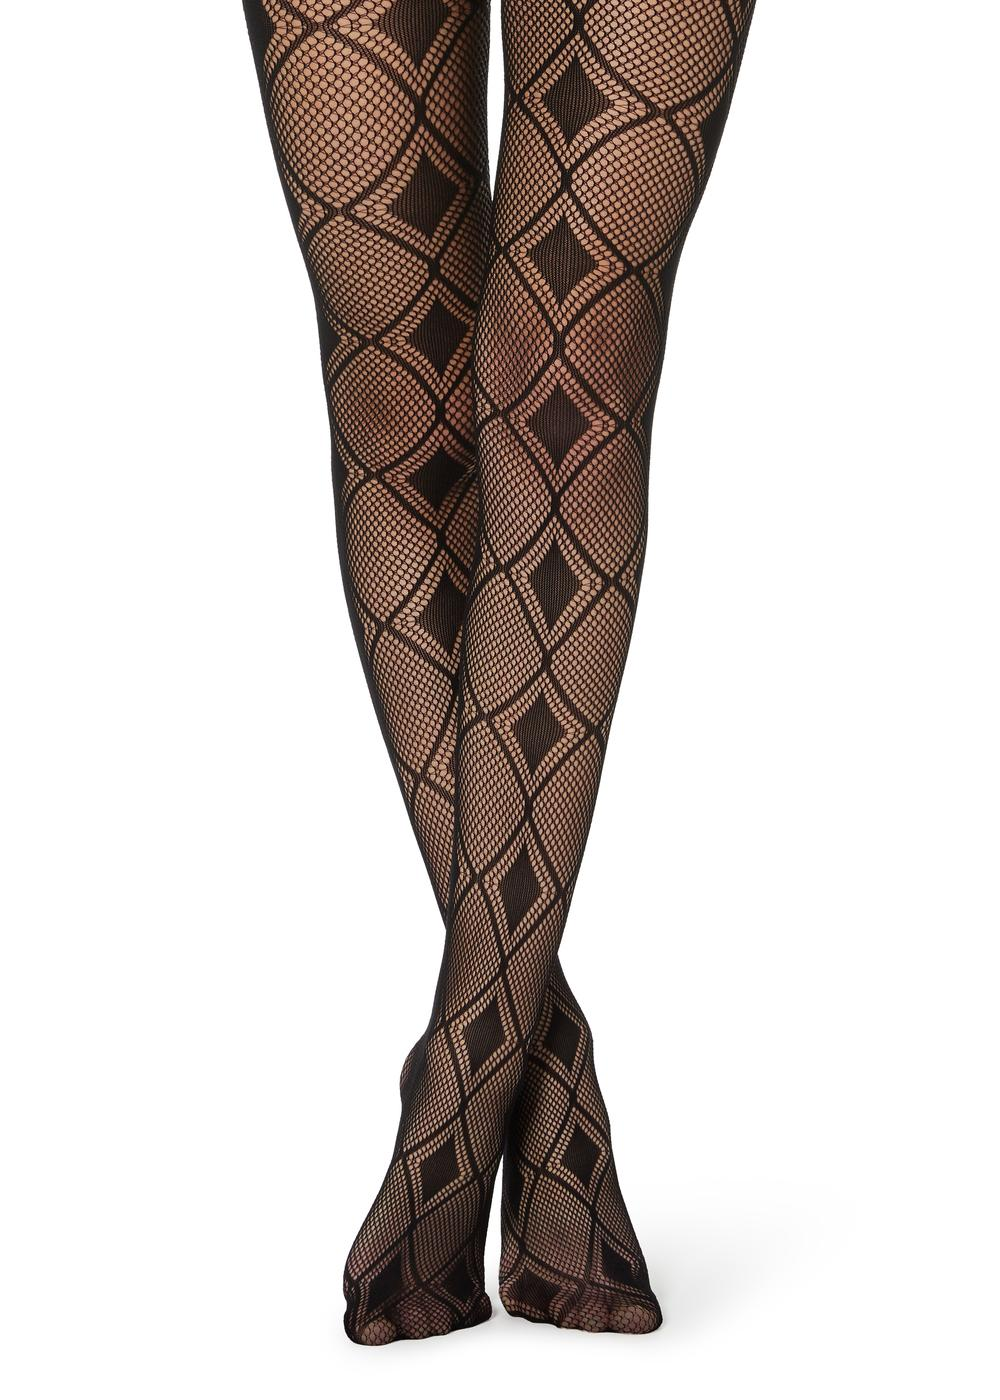 Diamond-patterned fishnet tights